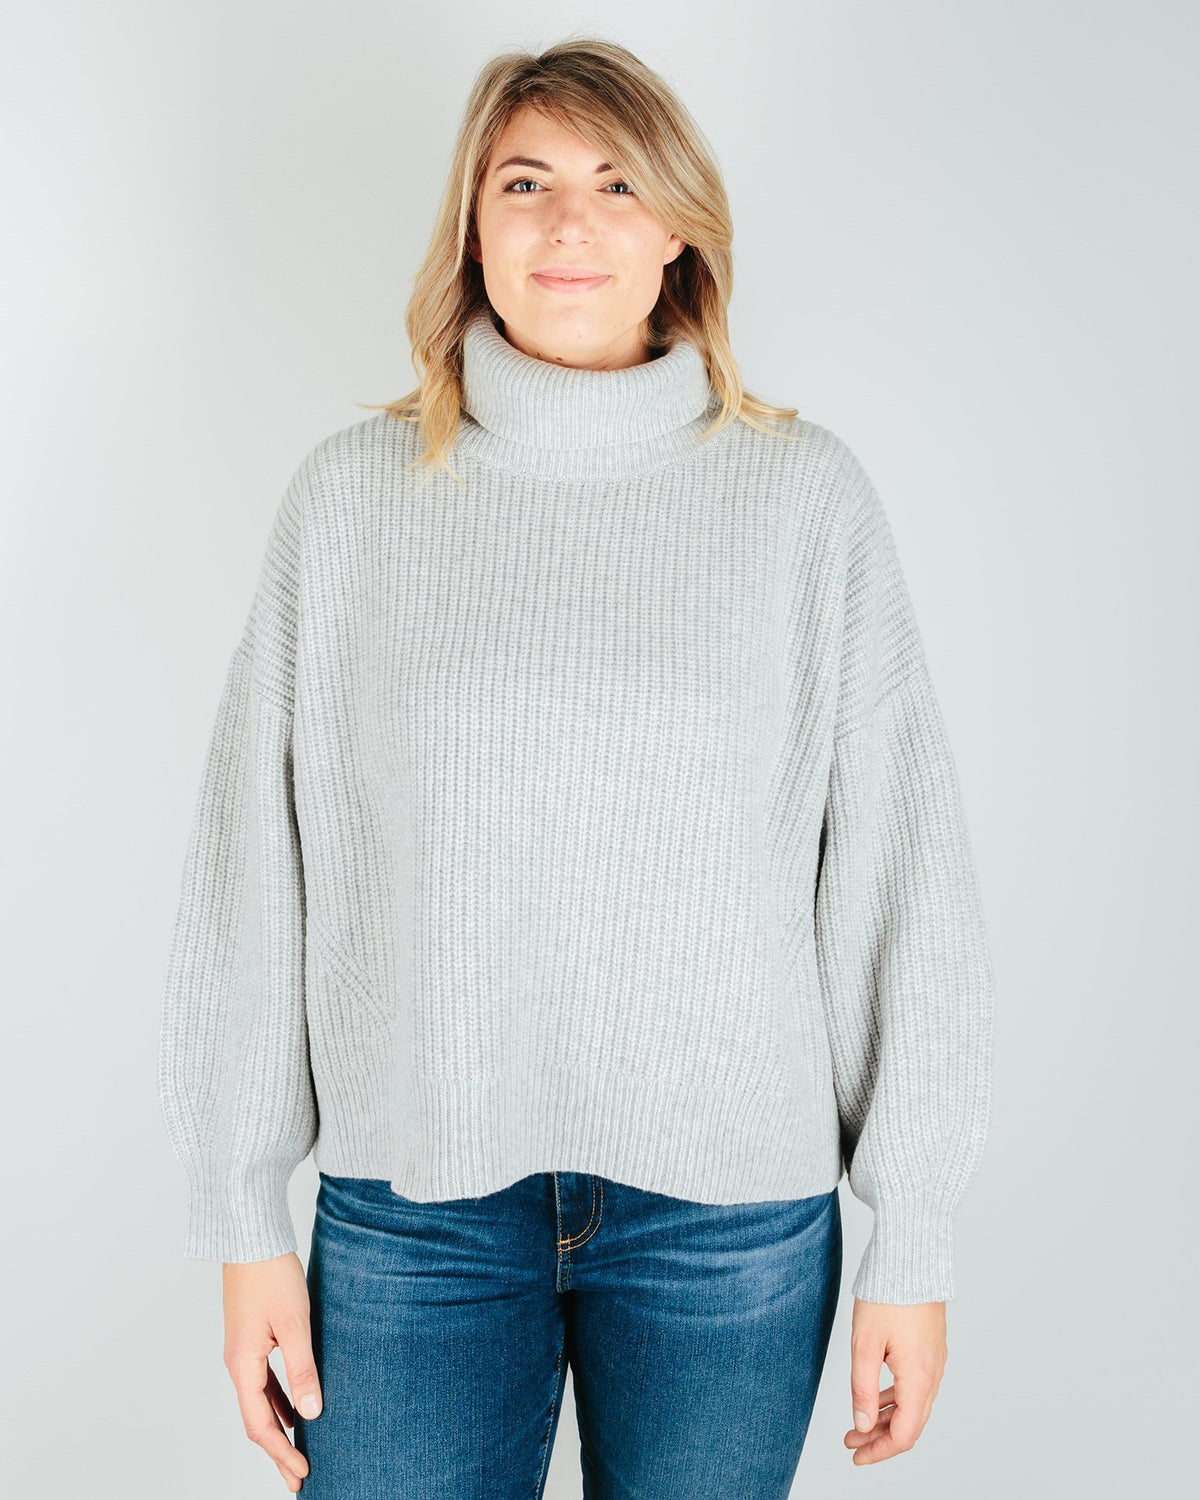 Demylee Clothing Light Heather Grey / XS Tillie Turtleneck Sweater in Light Heather Grey